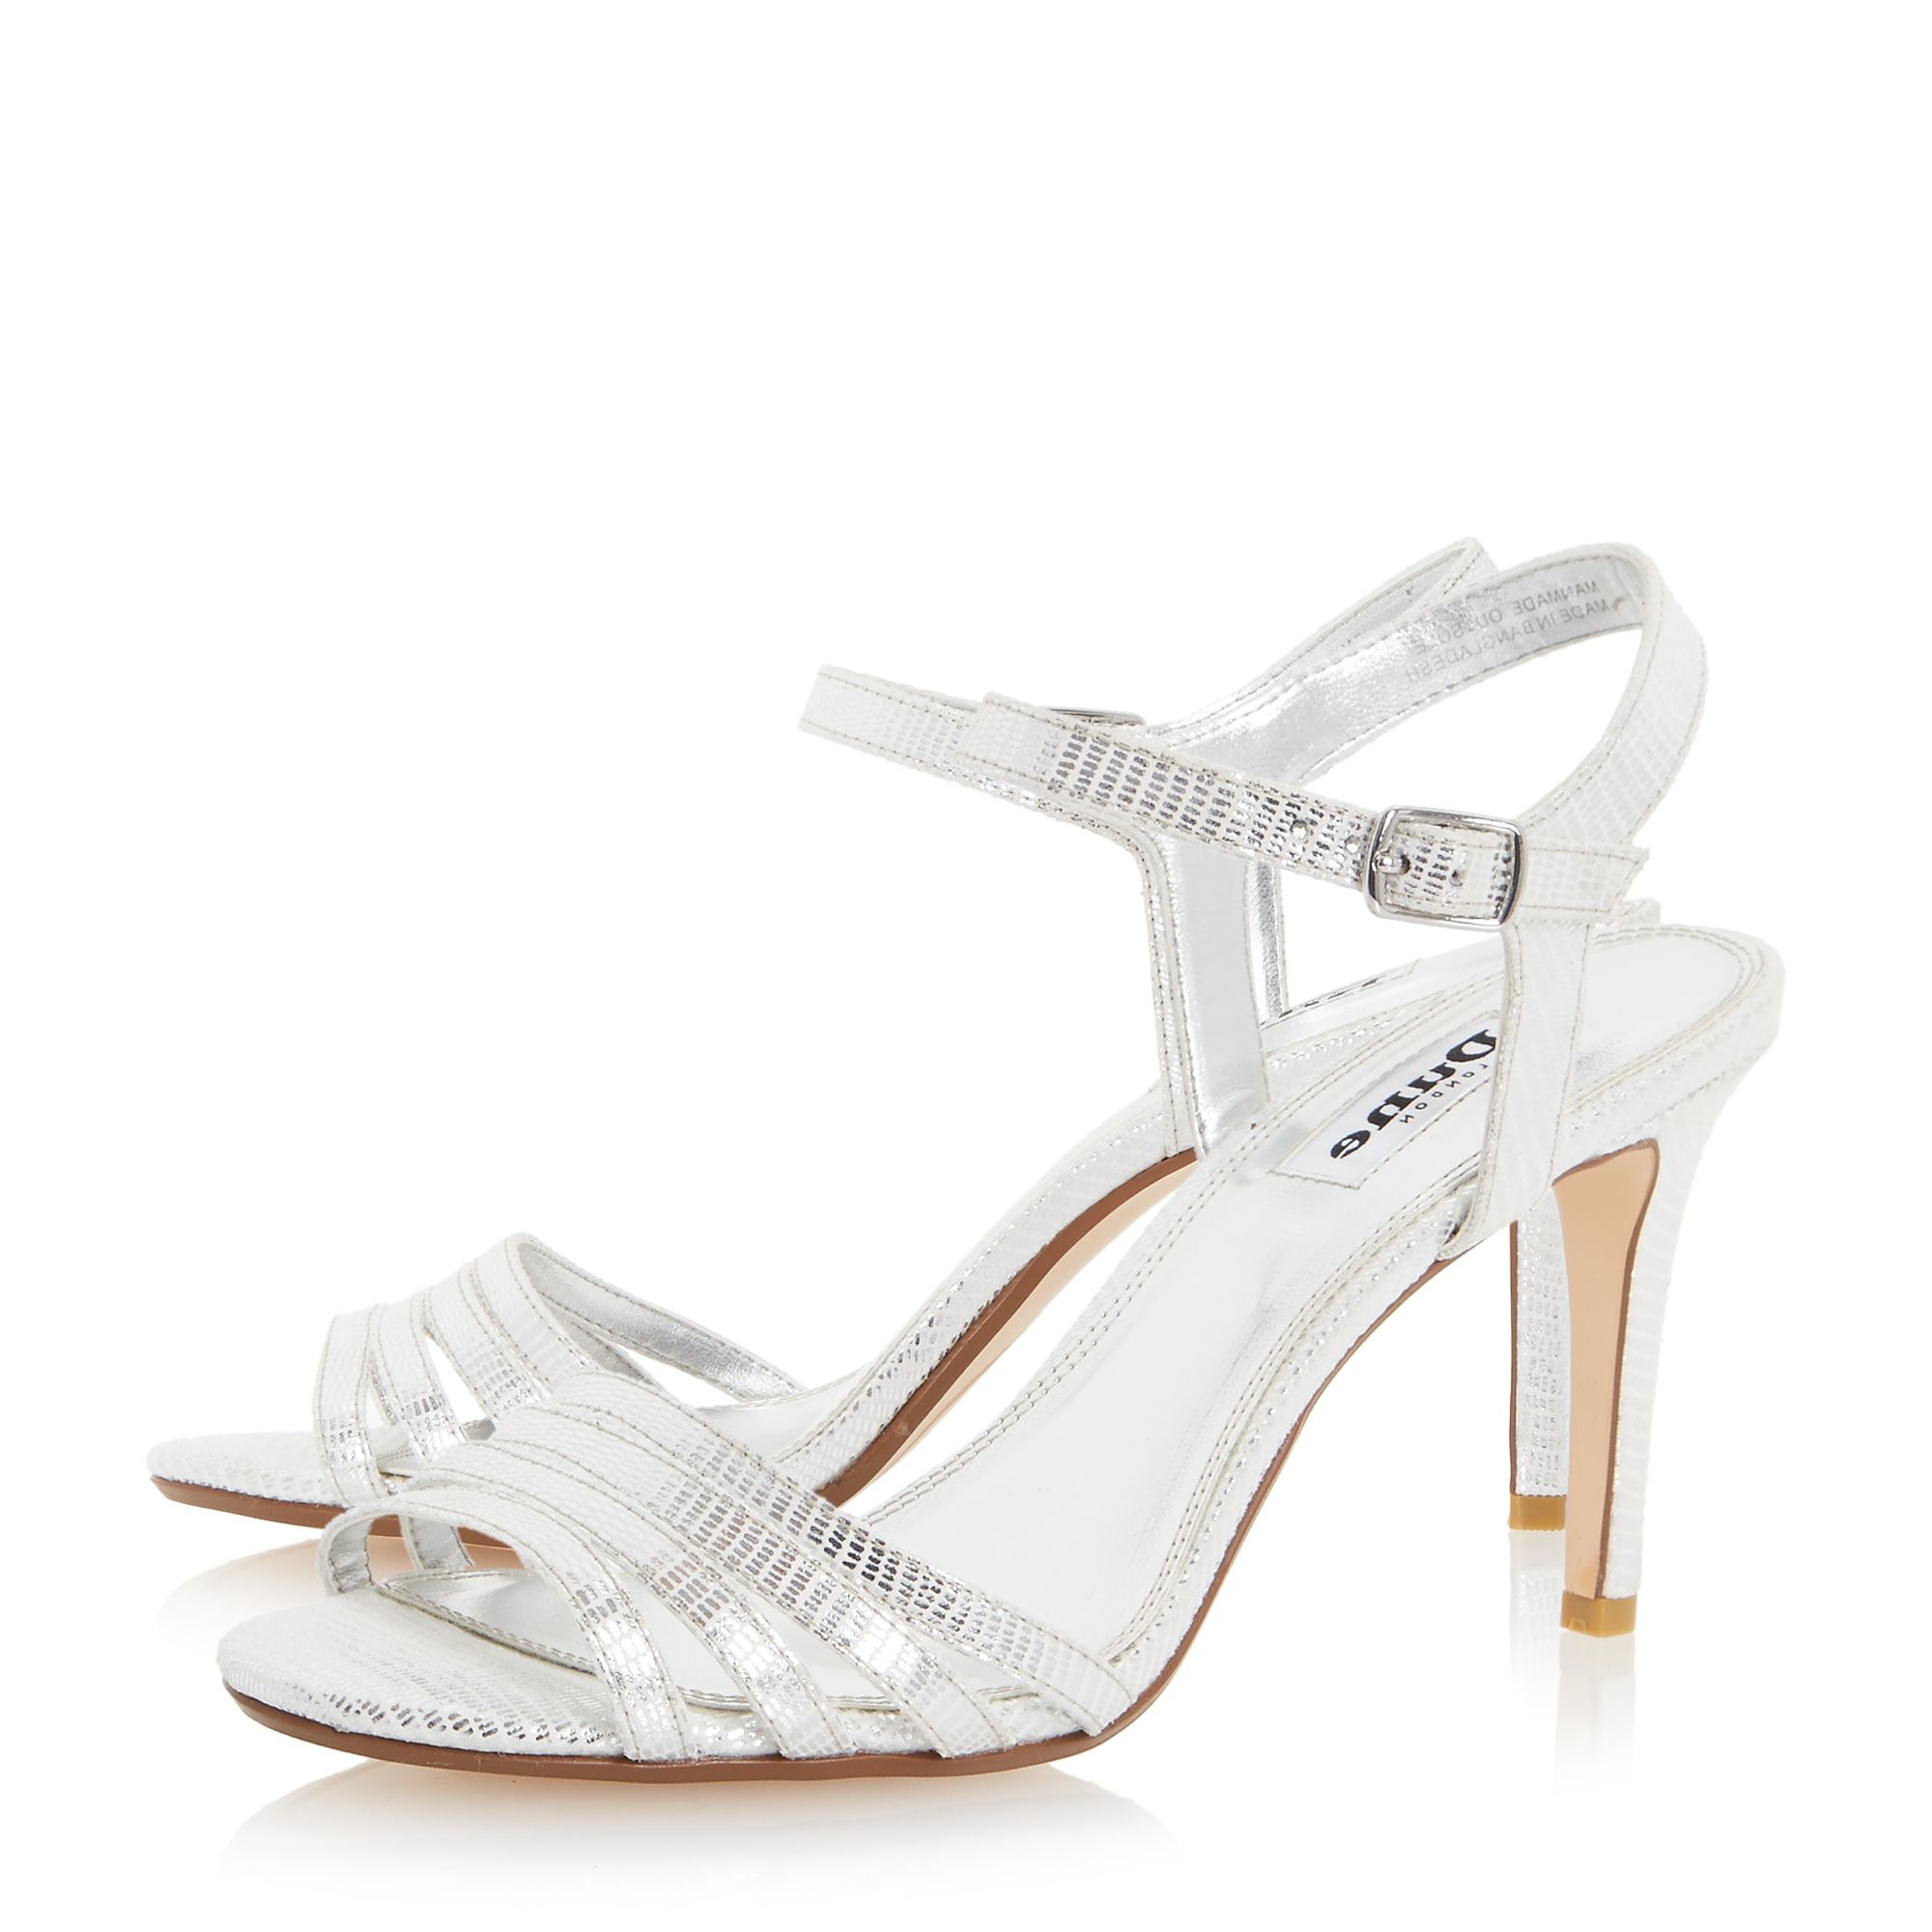 Dune Maci Strappy Two Part Mid Heel Sandals in White | Lyst